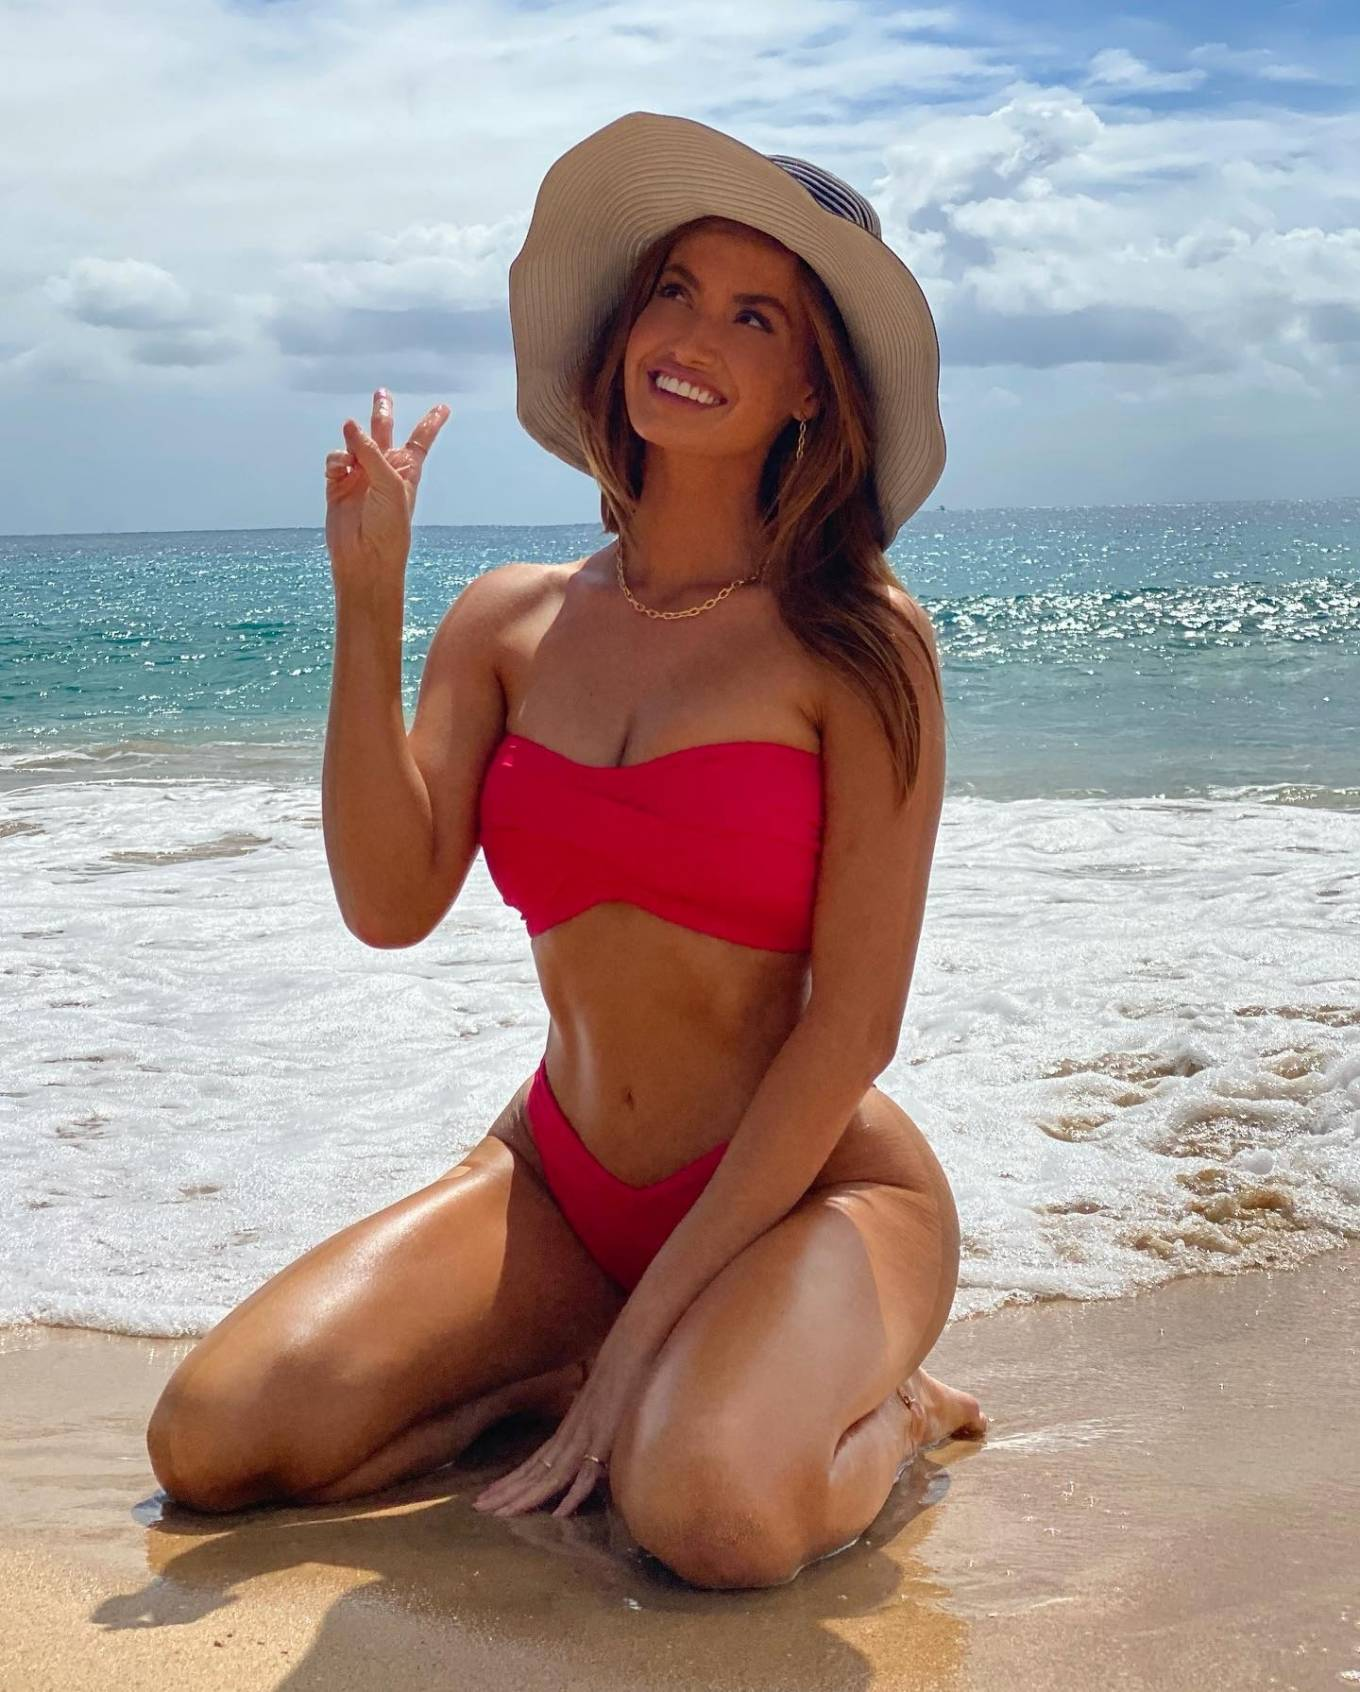 Haley Kalil 2021 : Haley Kalil – Swimsuits for all (2021)-01